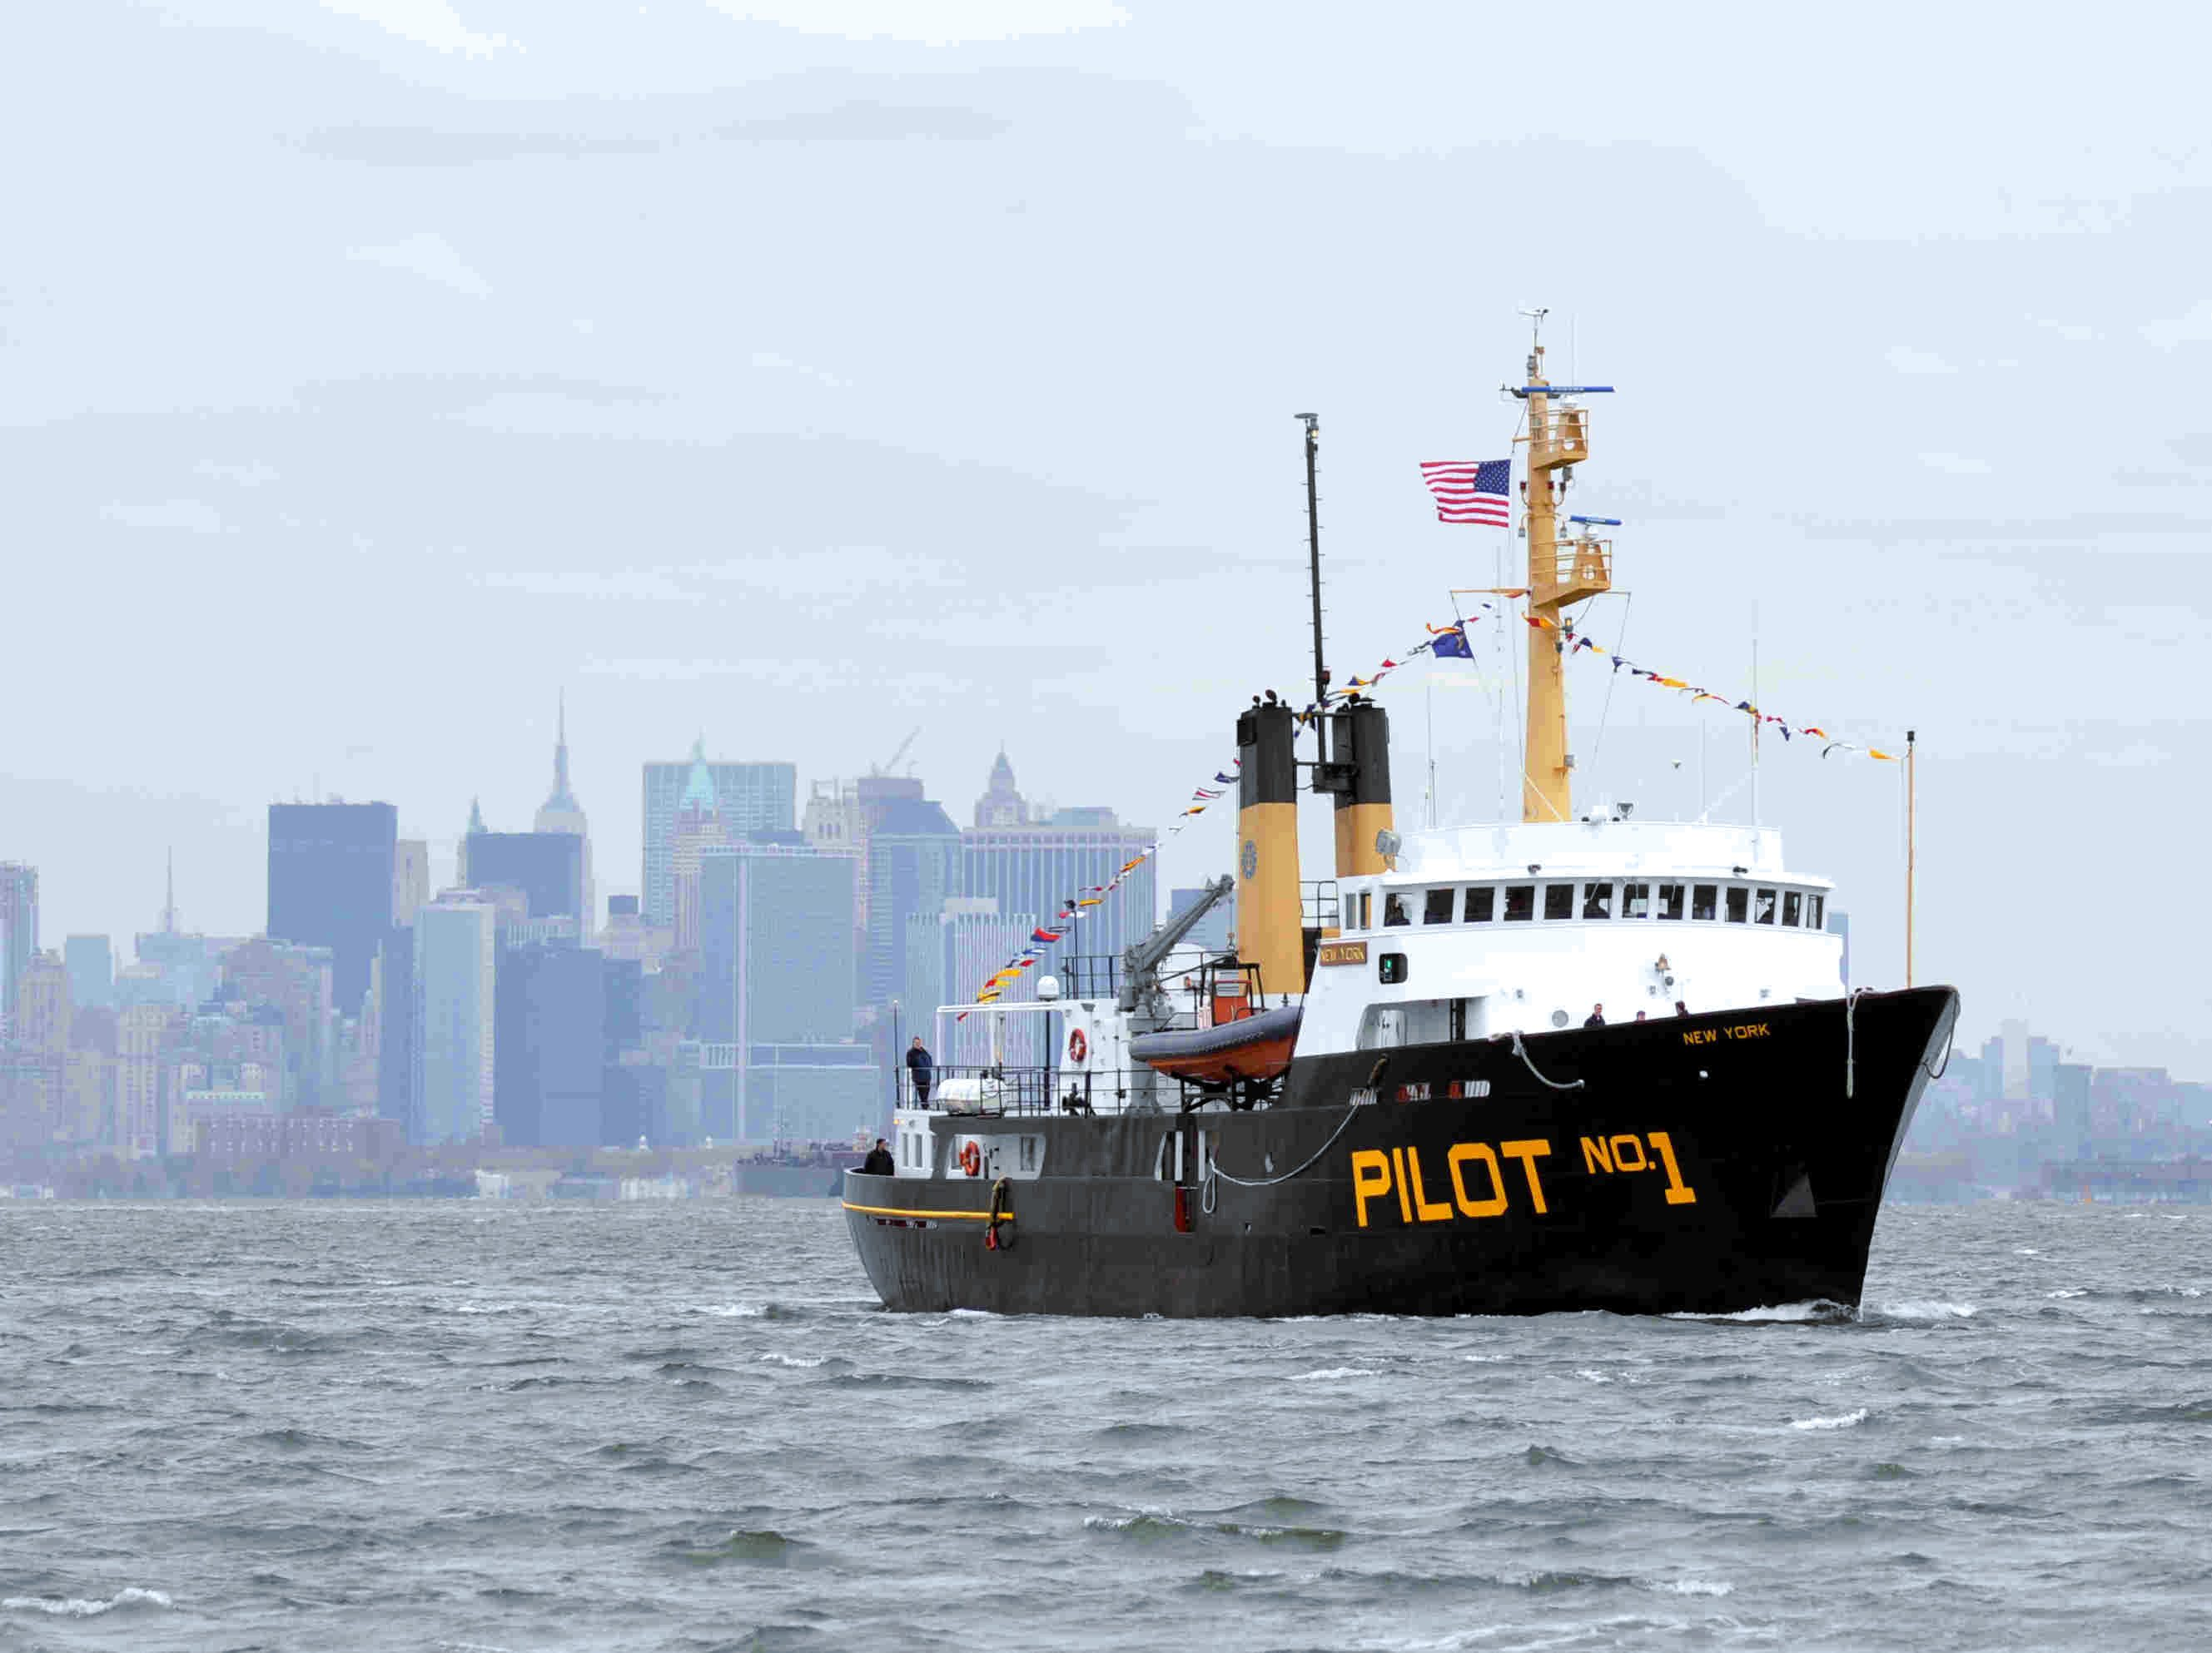 pb new york pilot boat